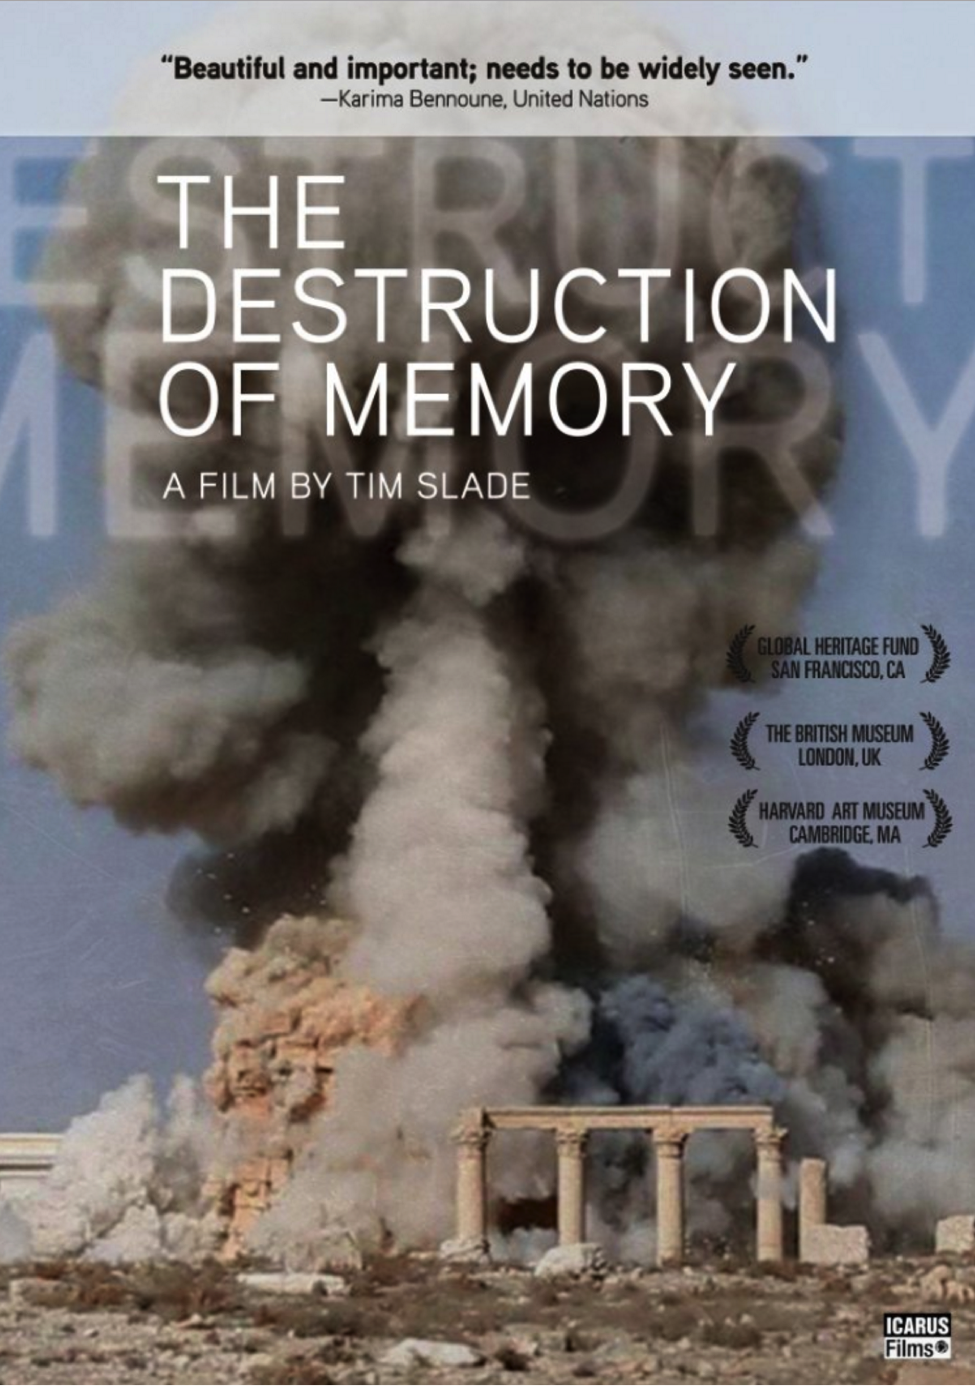 The Destruction of Memory: Cultural Crimes and the National and International Efforts to Combat Them